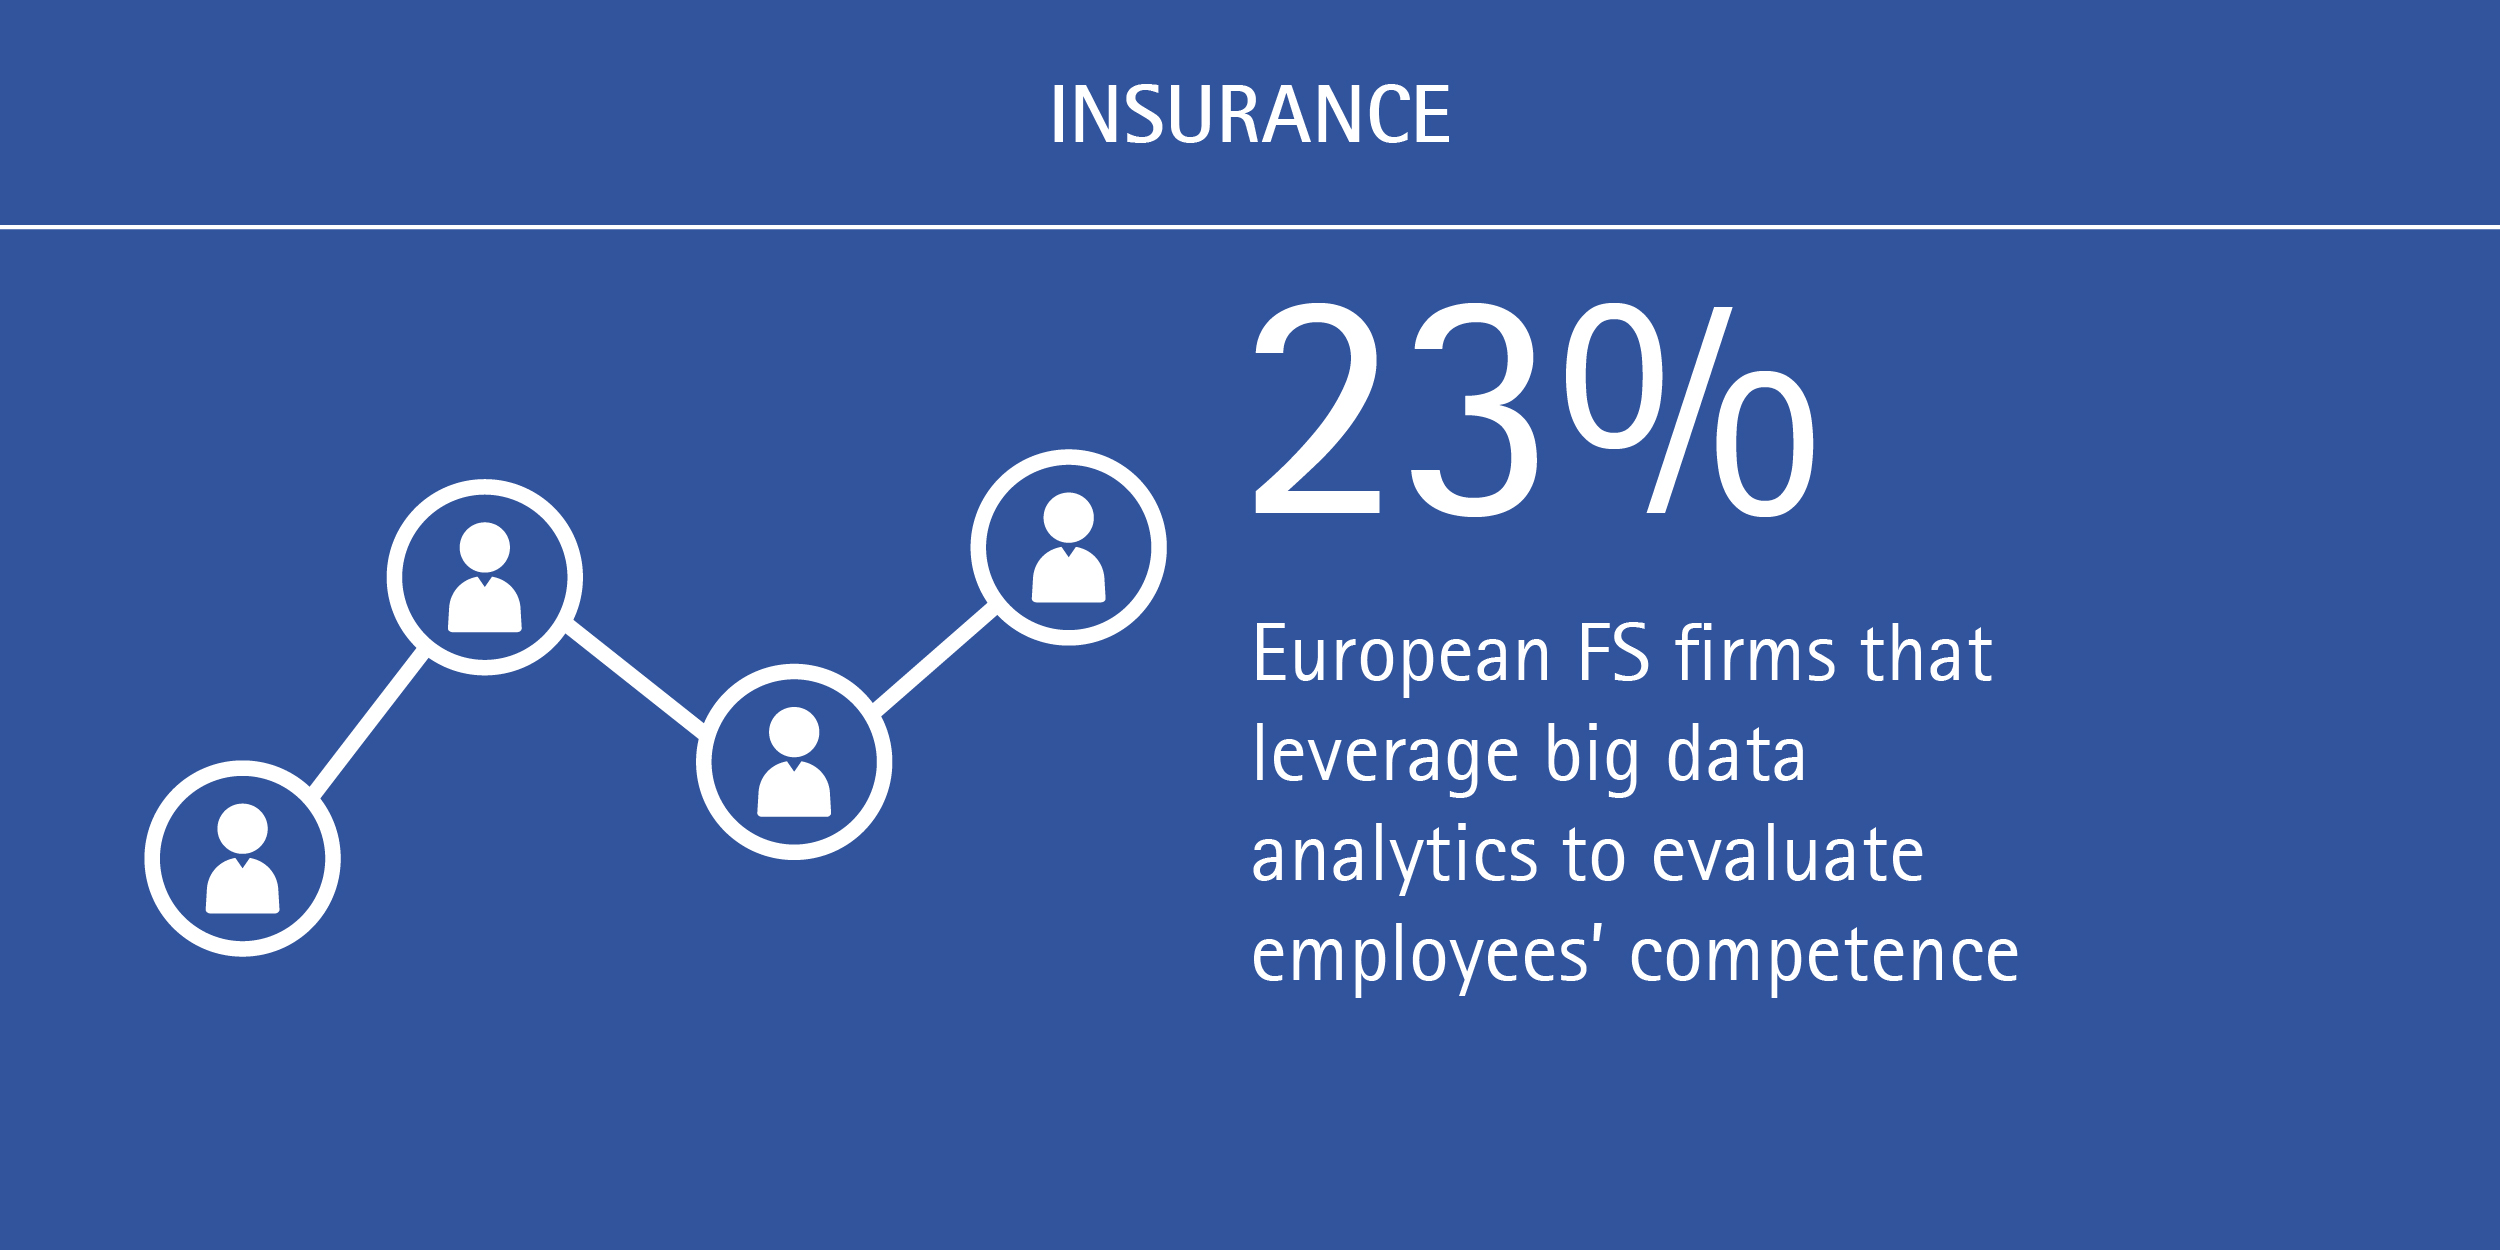 For European insurers and banks, it's time to bring digital in-house - European firms that leverage big data analytics